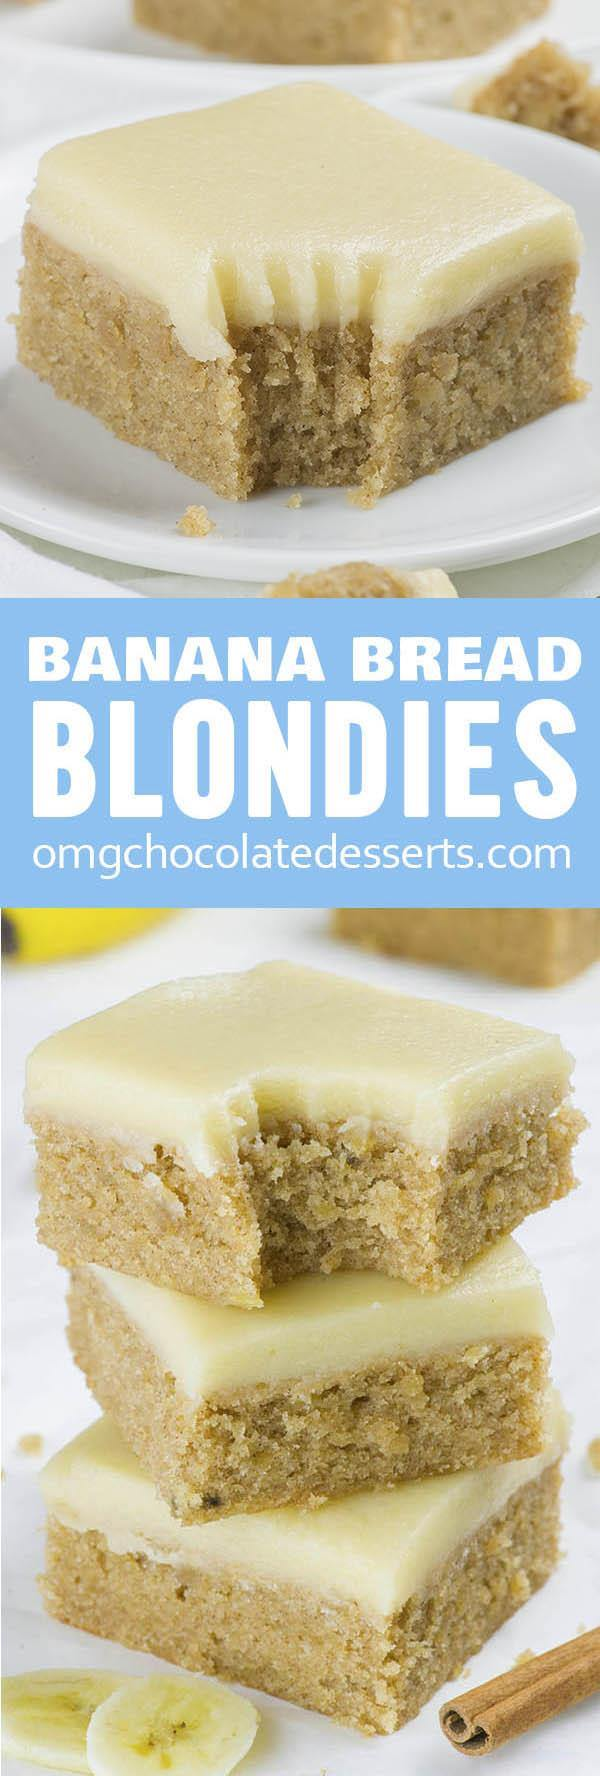 Banana Bread Blondies Omg Chocolate Desserts